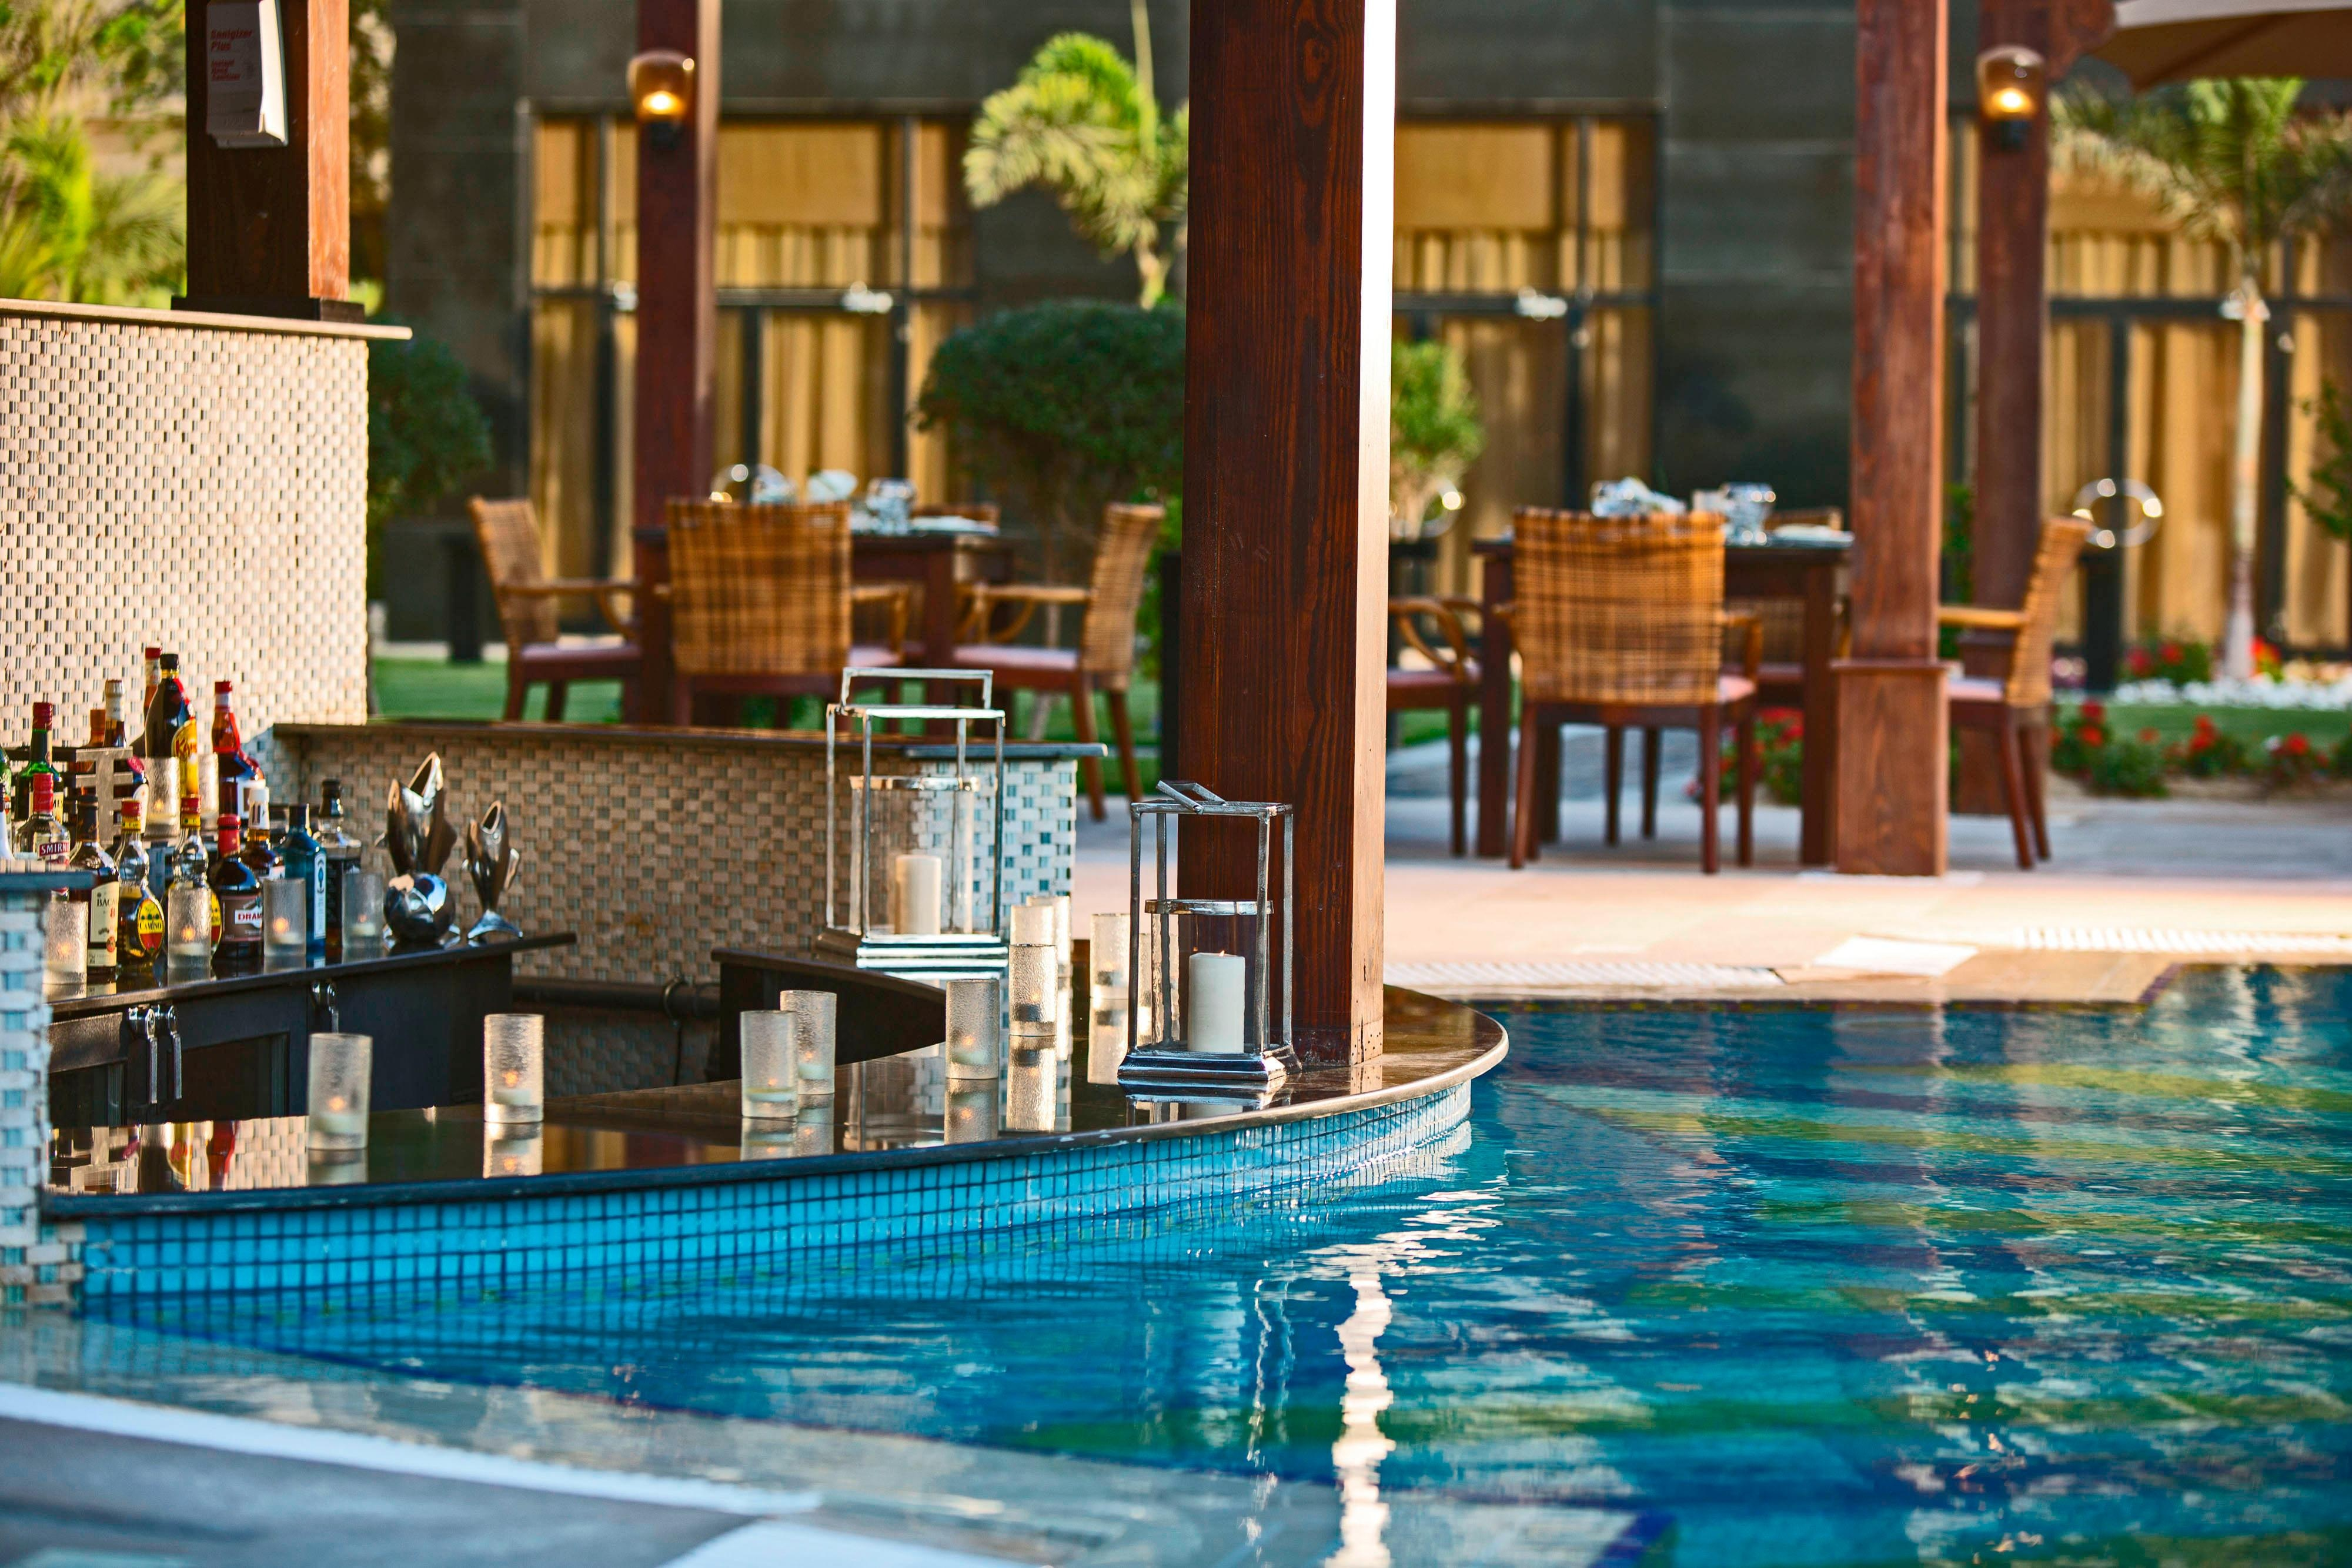 Poolside bar at Cairo hotel